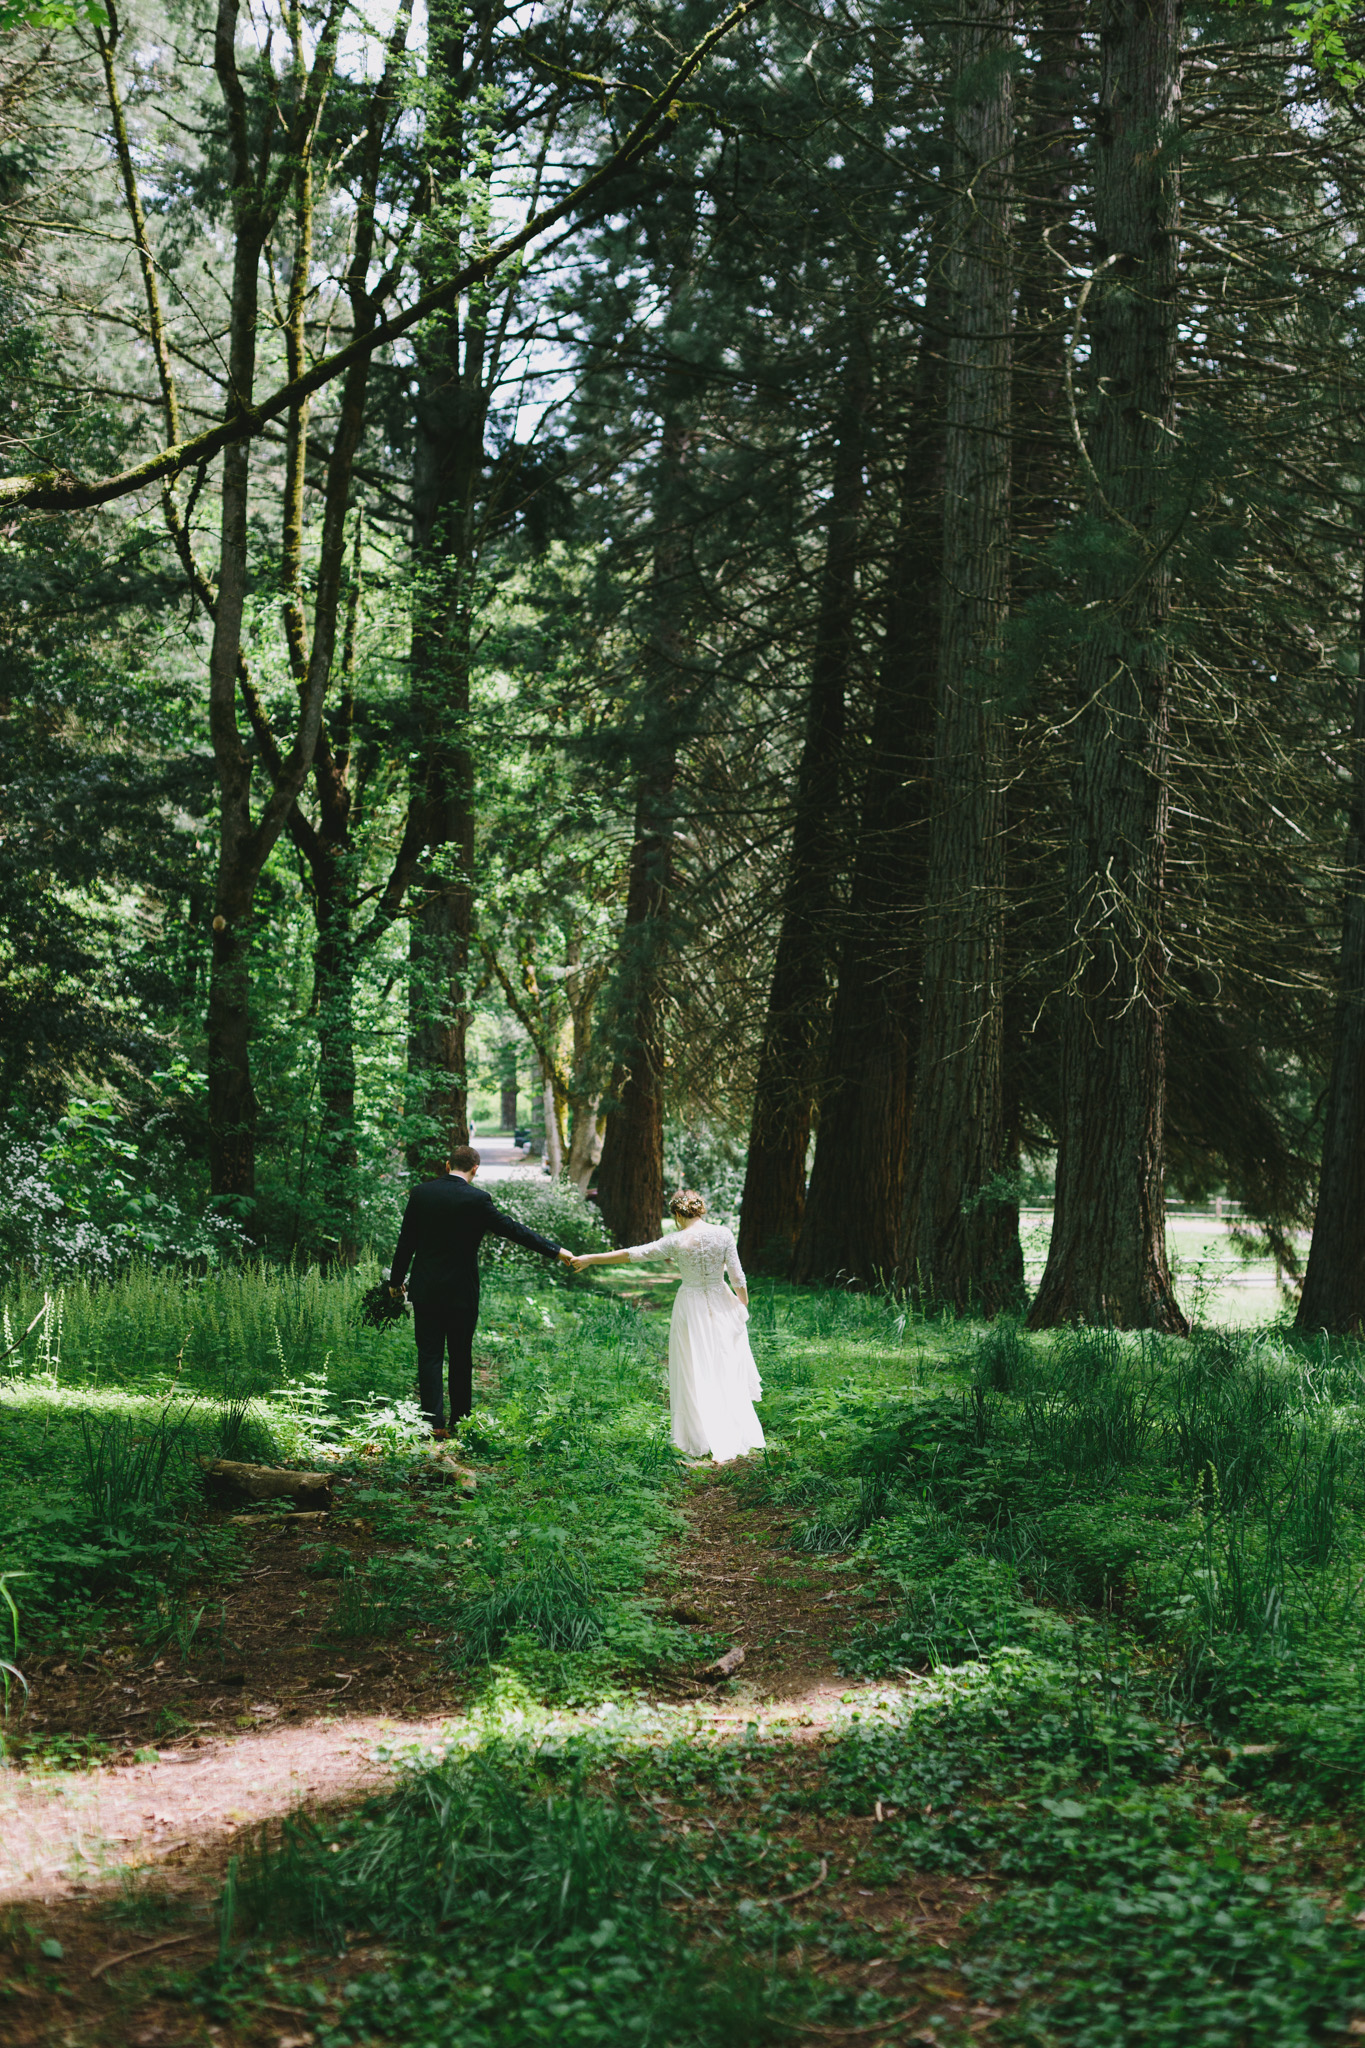 Bride and Groom Walking - Forest